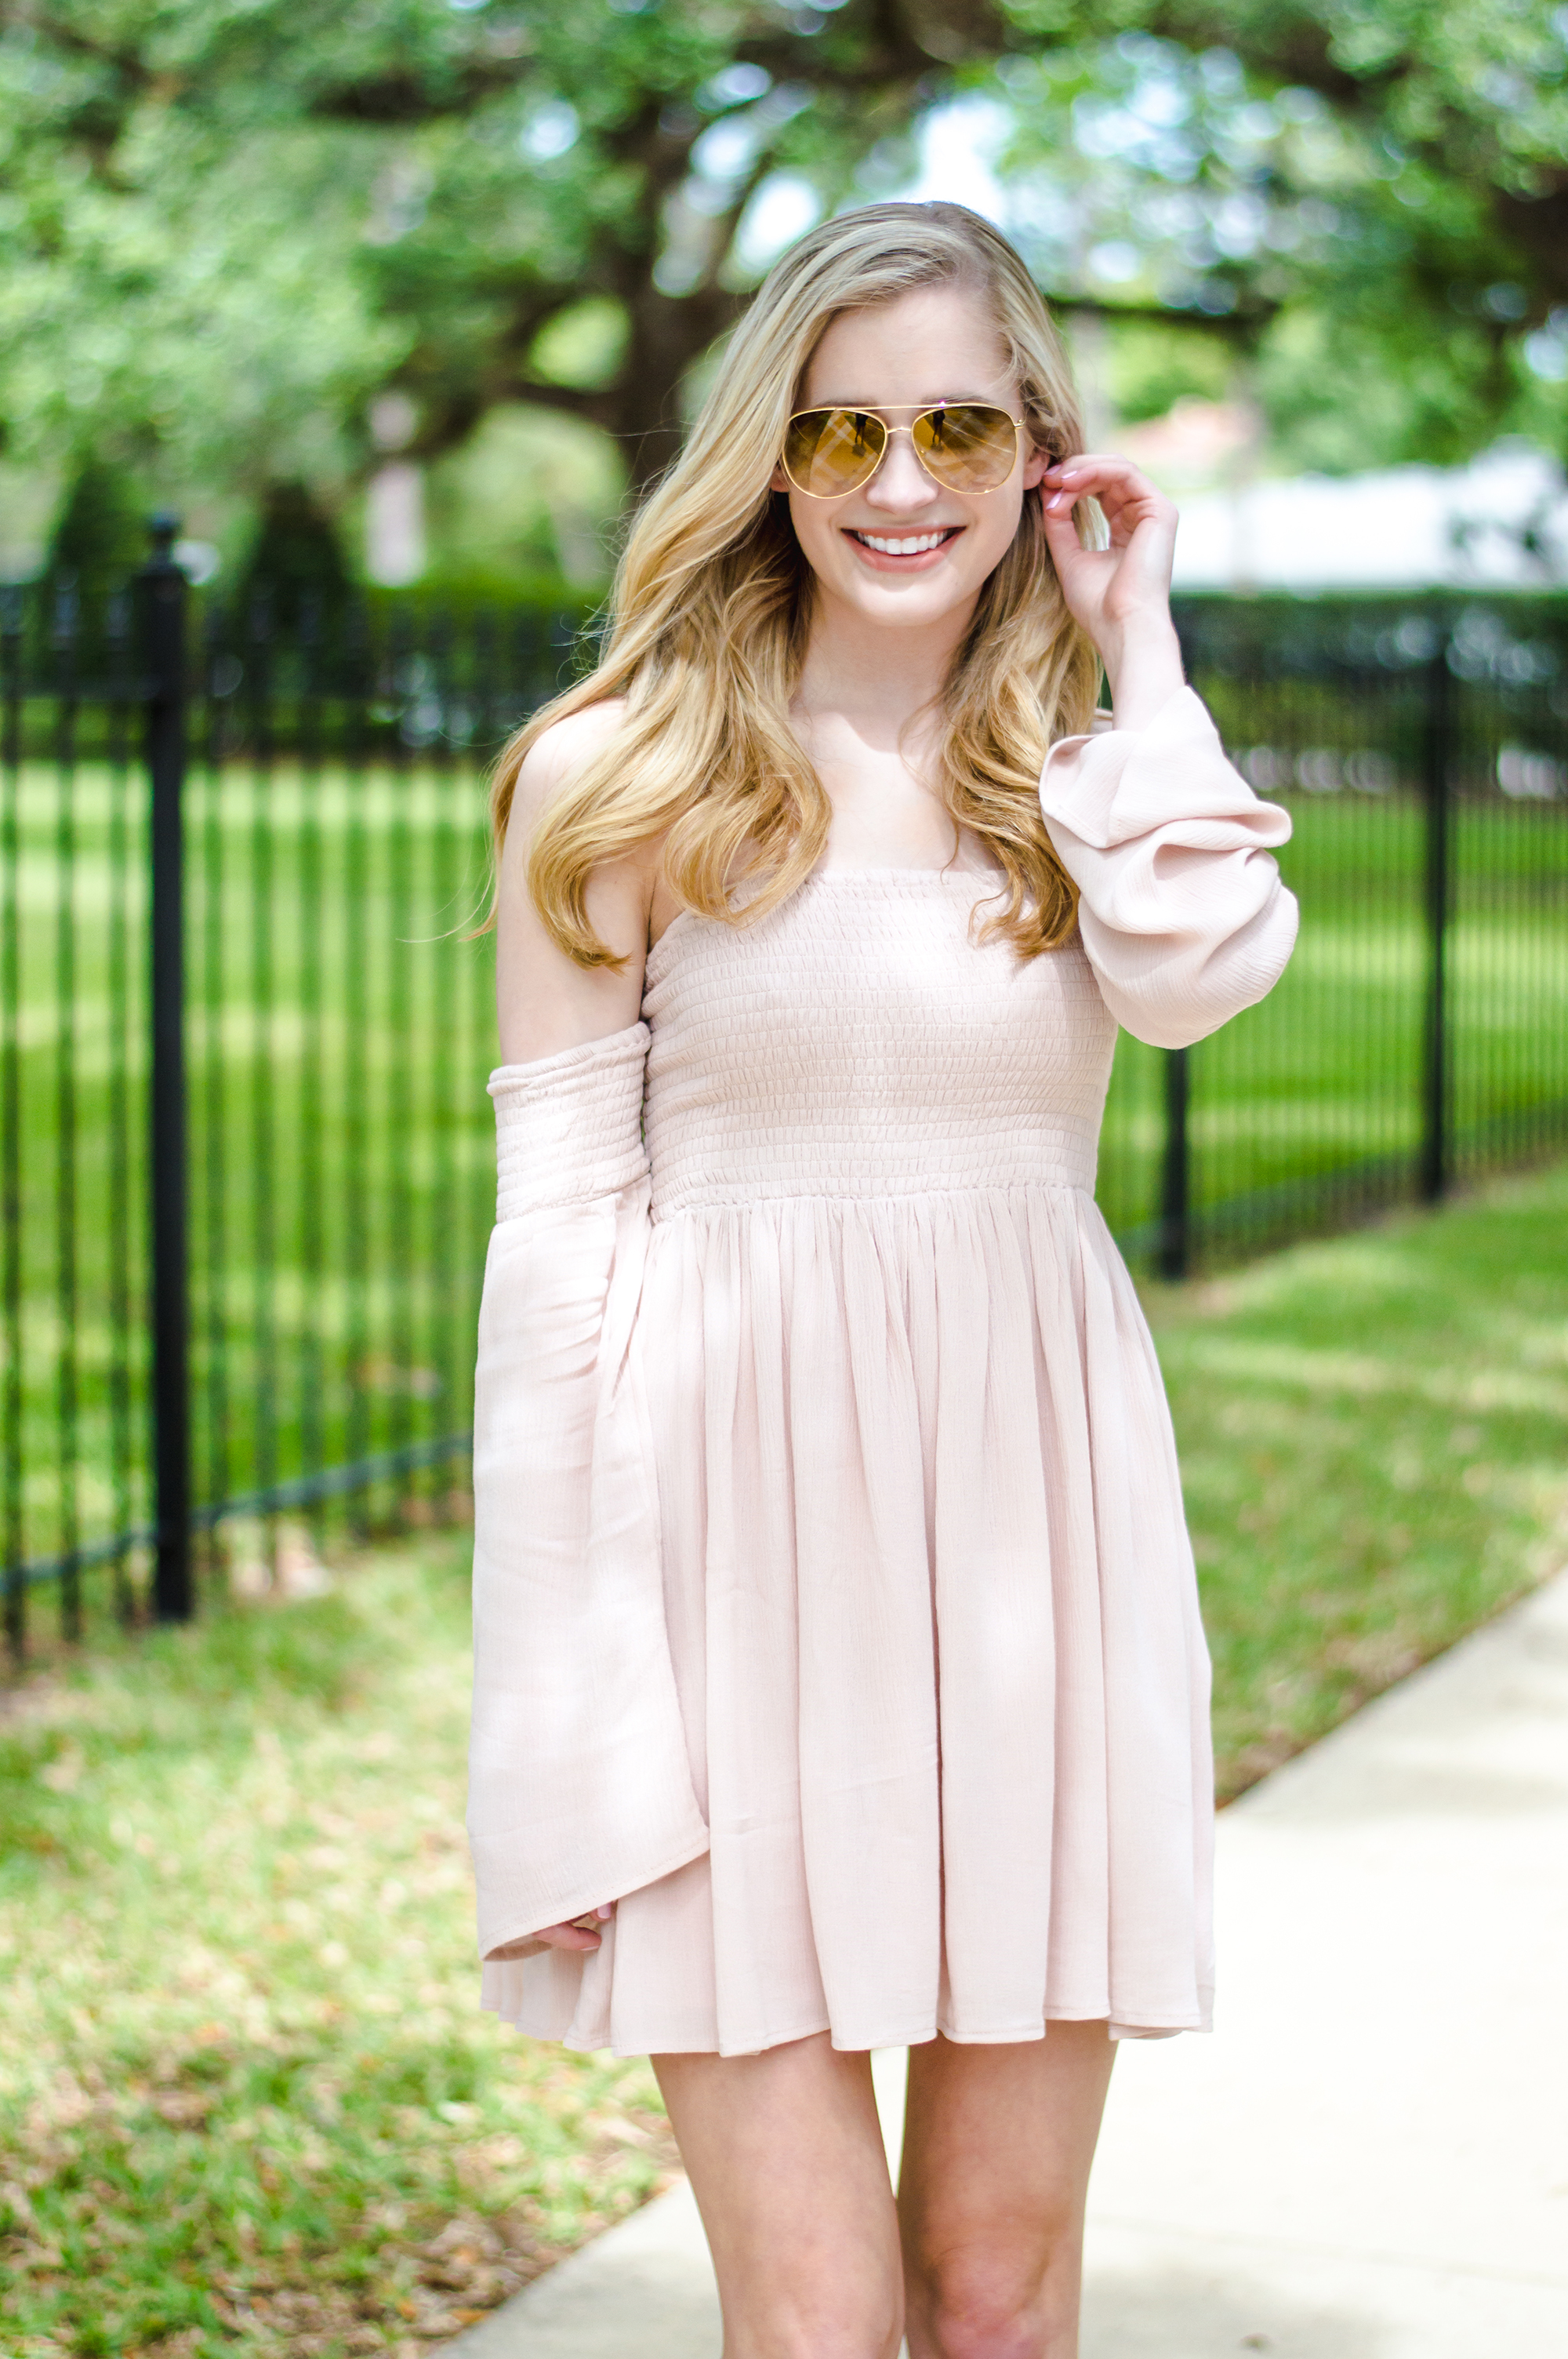 styelled-blog-elle-elisabeth-fashion-style-blogger-florida-tobi-clothing-sundress-blush-dress-burberry-sunglasses-aviator-dolce-vita-12